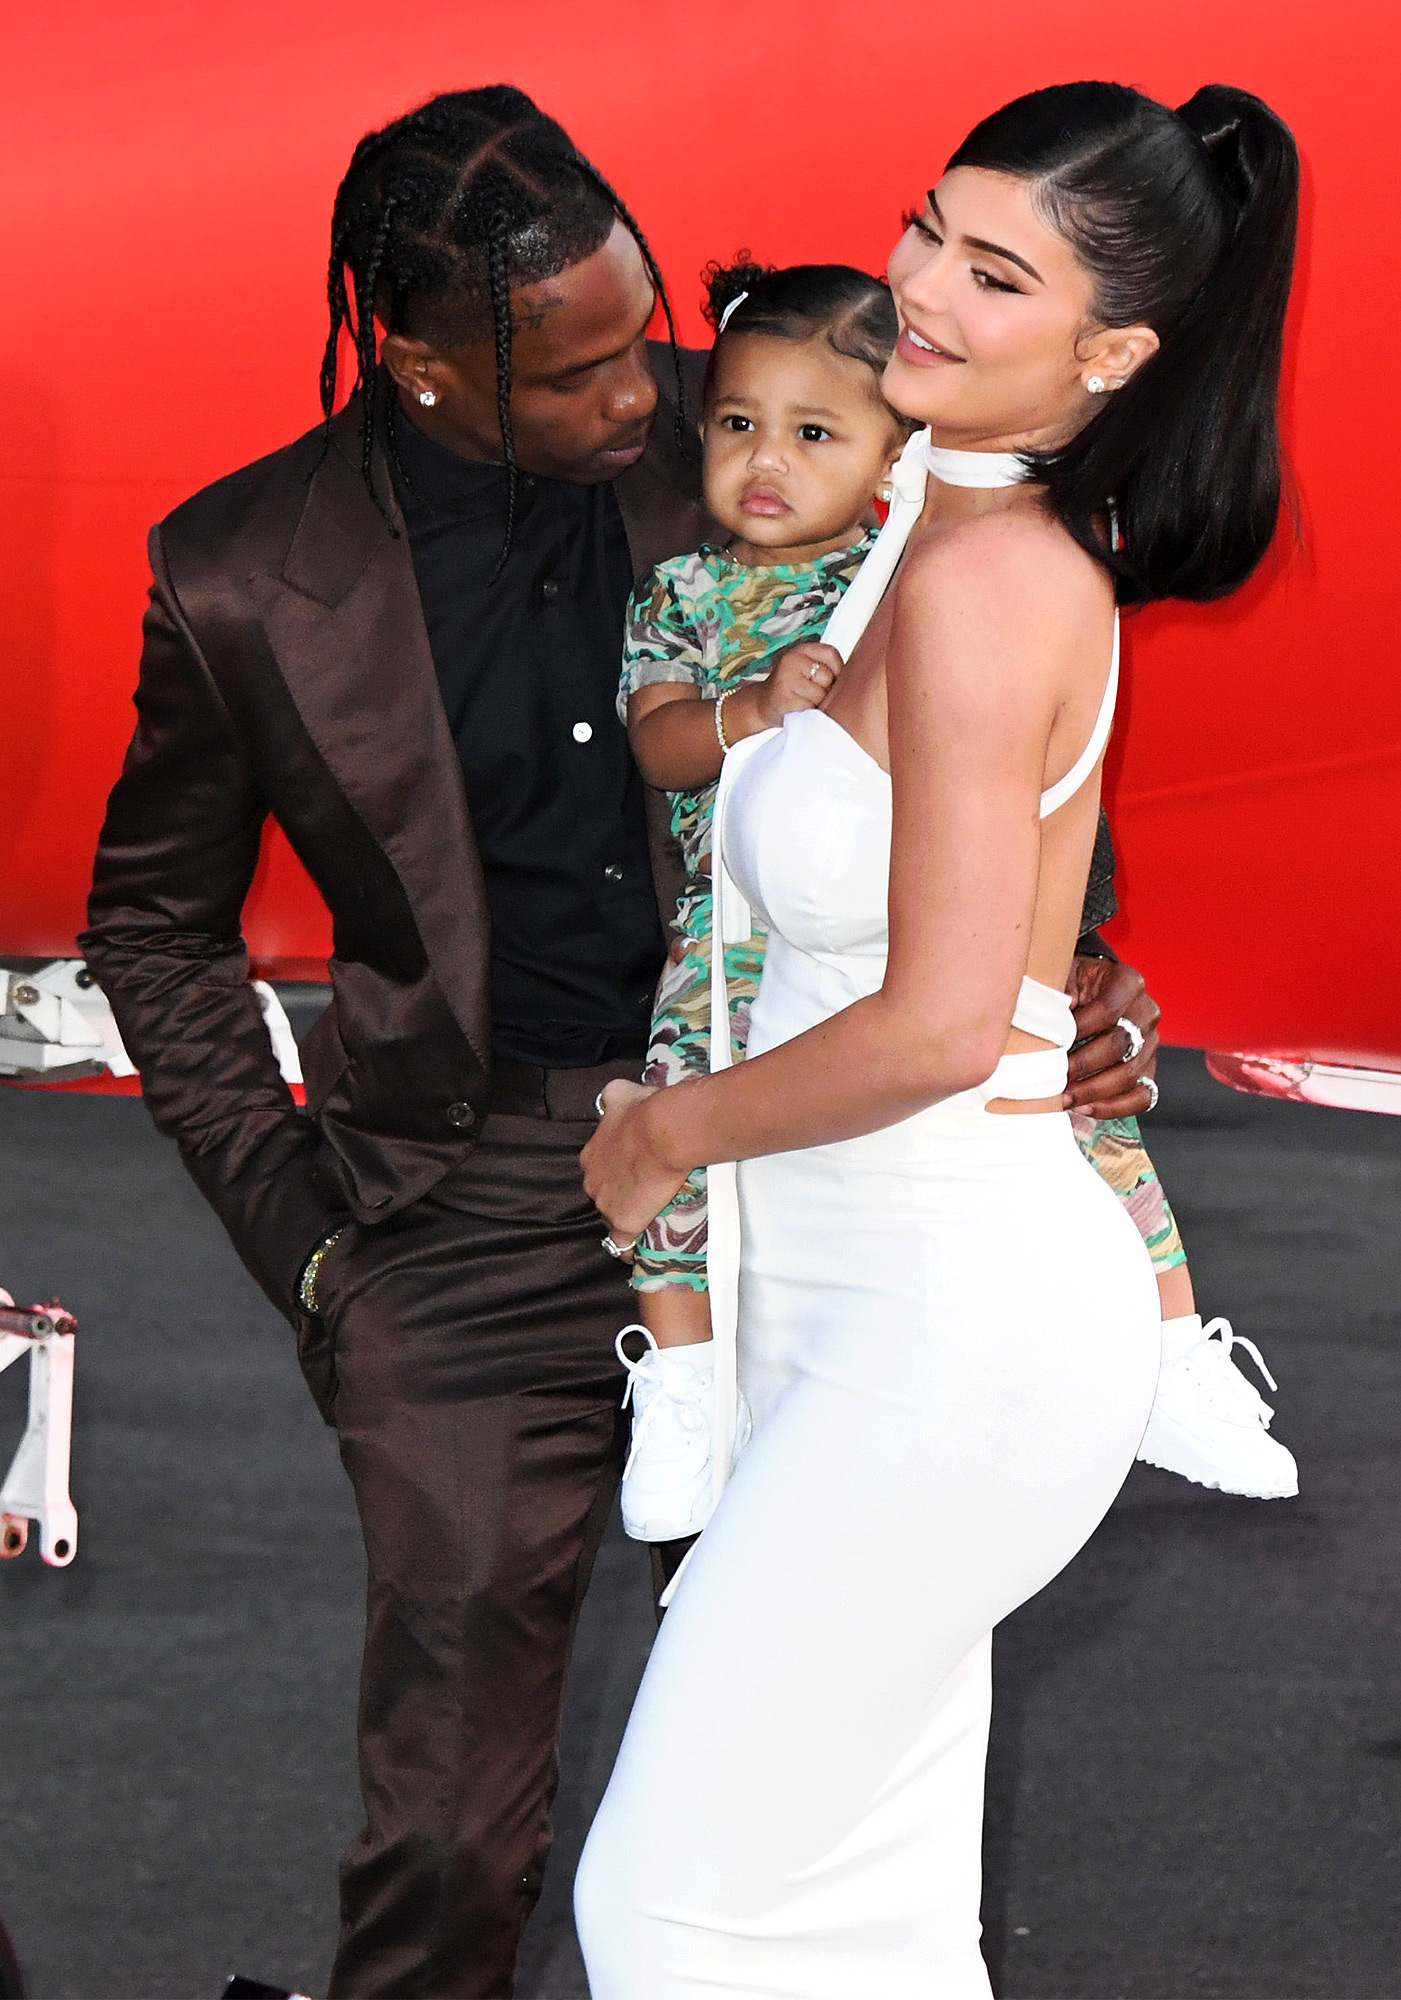 Travis Scott, Stormi Webster and Kylie Jenner